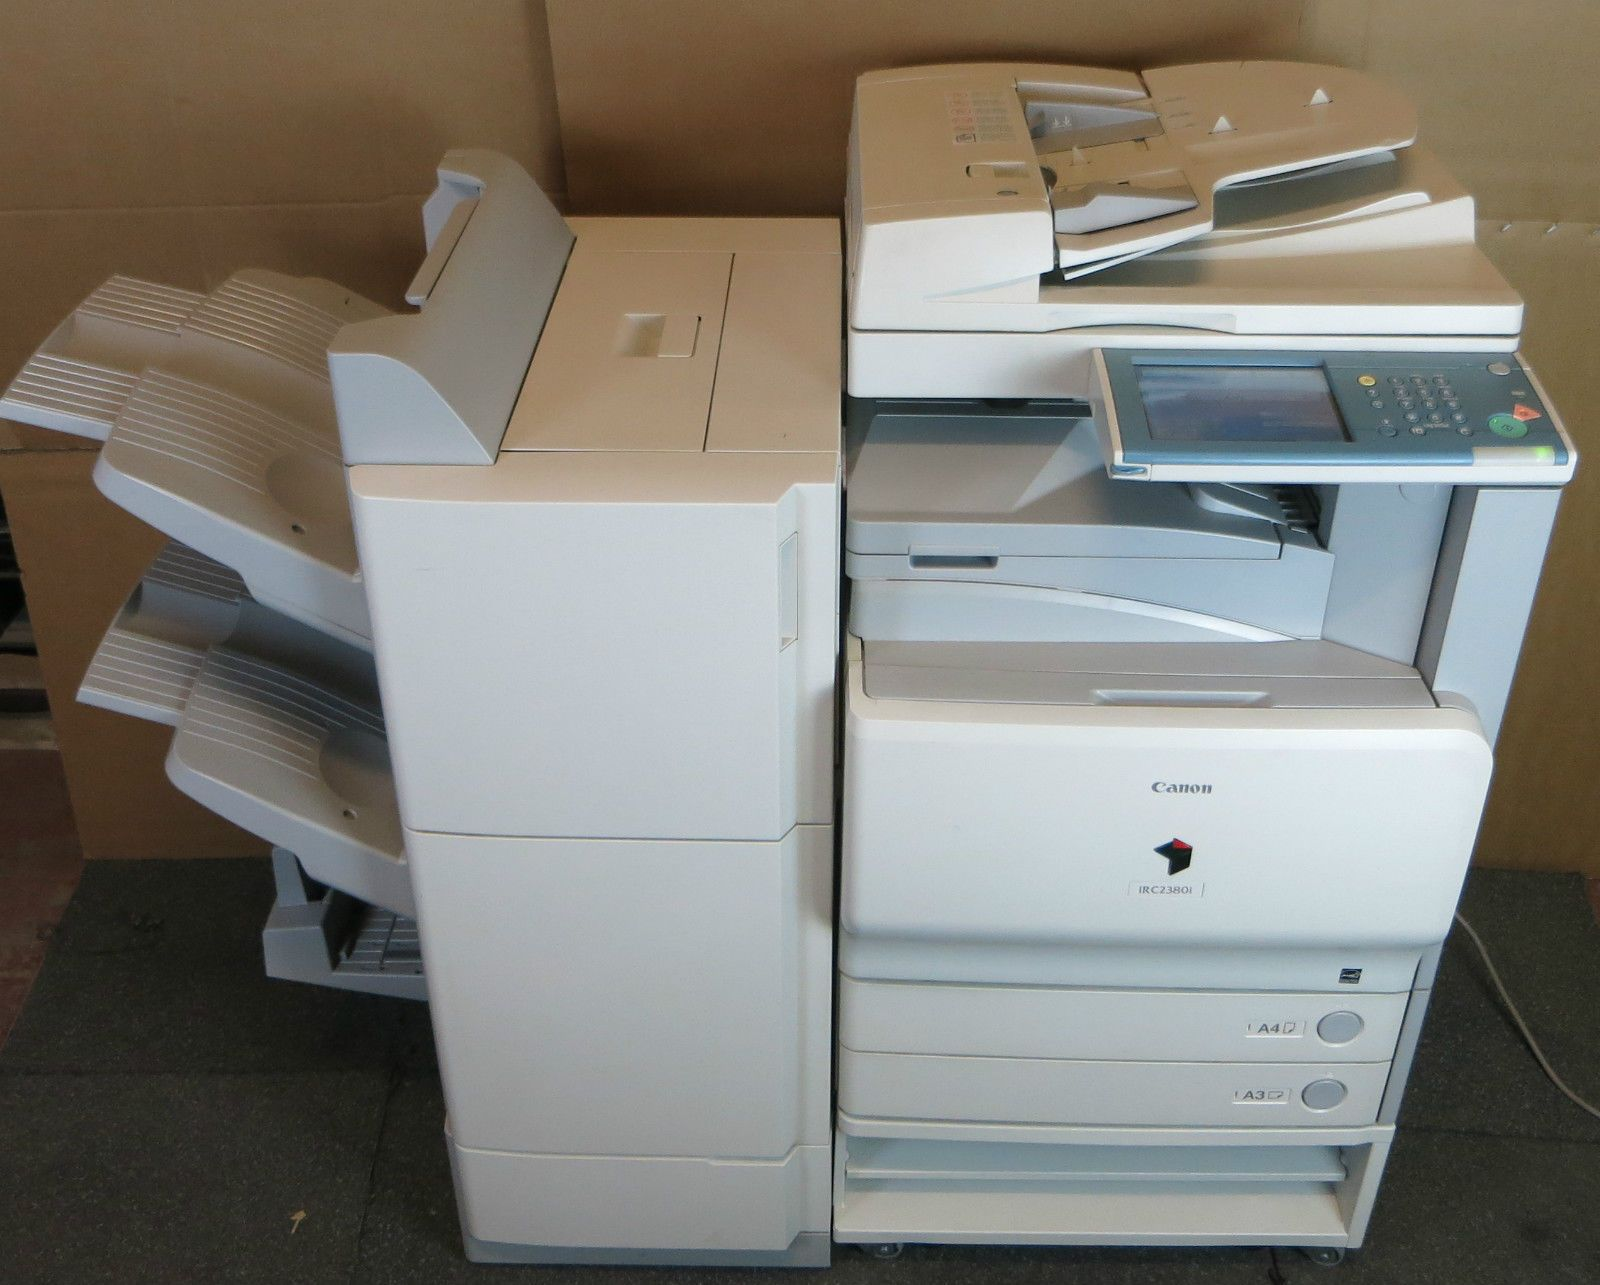 Download Canon iRC2380i printer driver and the best way to install driver